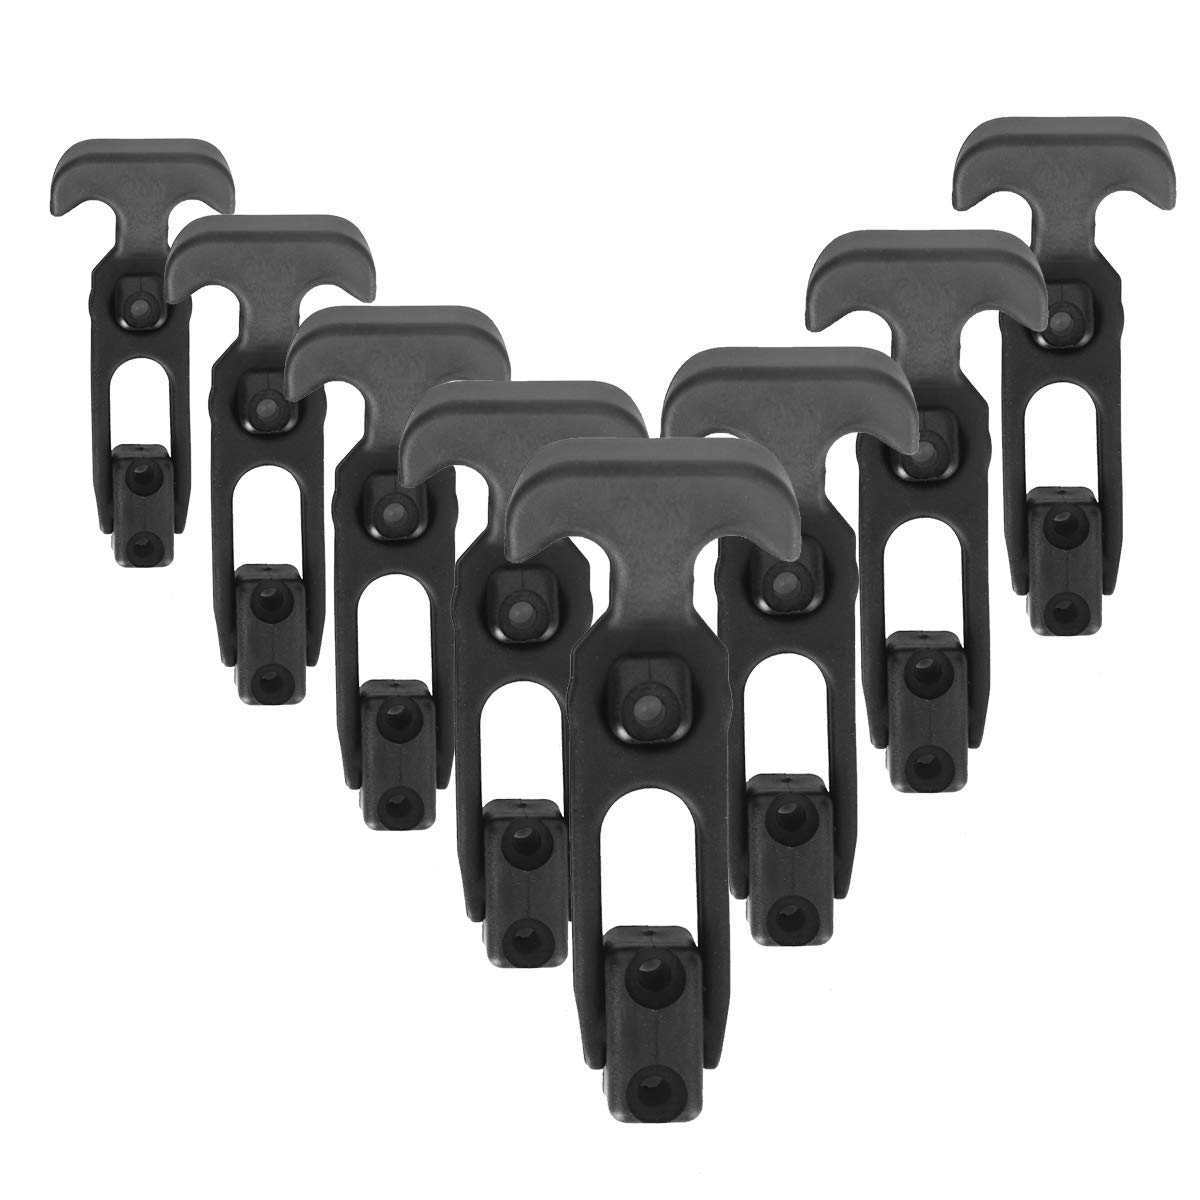 Hardtech 8 Pack Flexible Hasp RubberT-Handle Draw Latches for Mad Jax Cooler,Golf Cart Boat Farm Hood Tractor or Tool Box